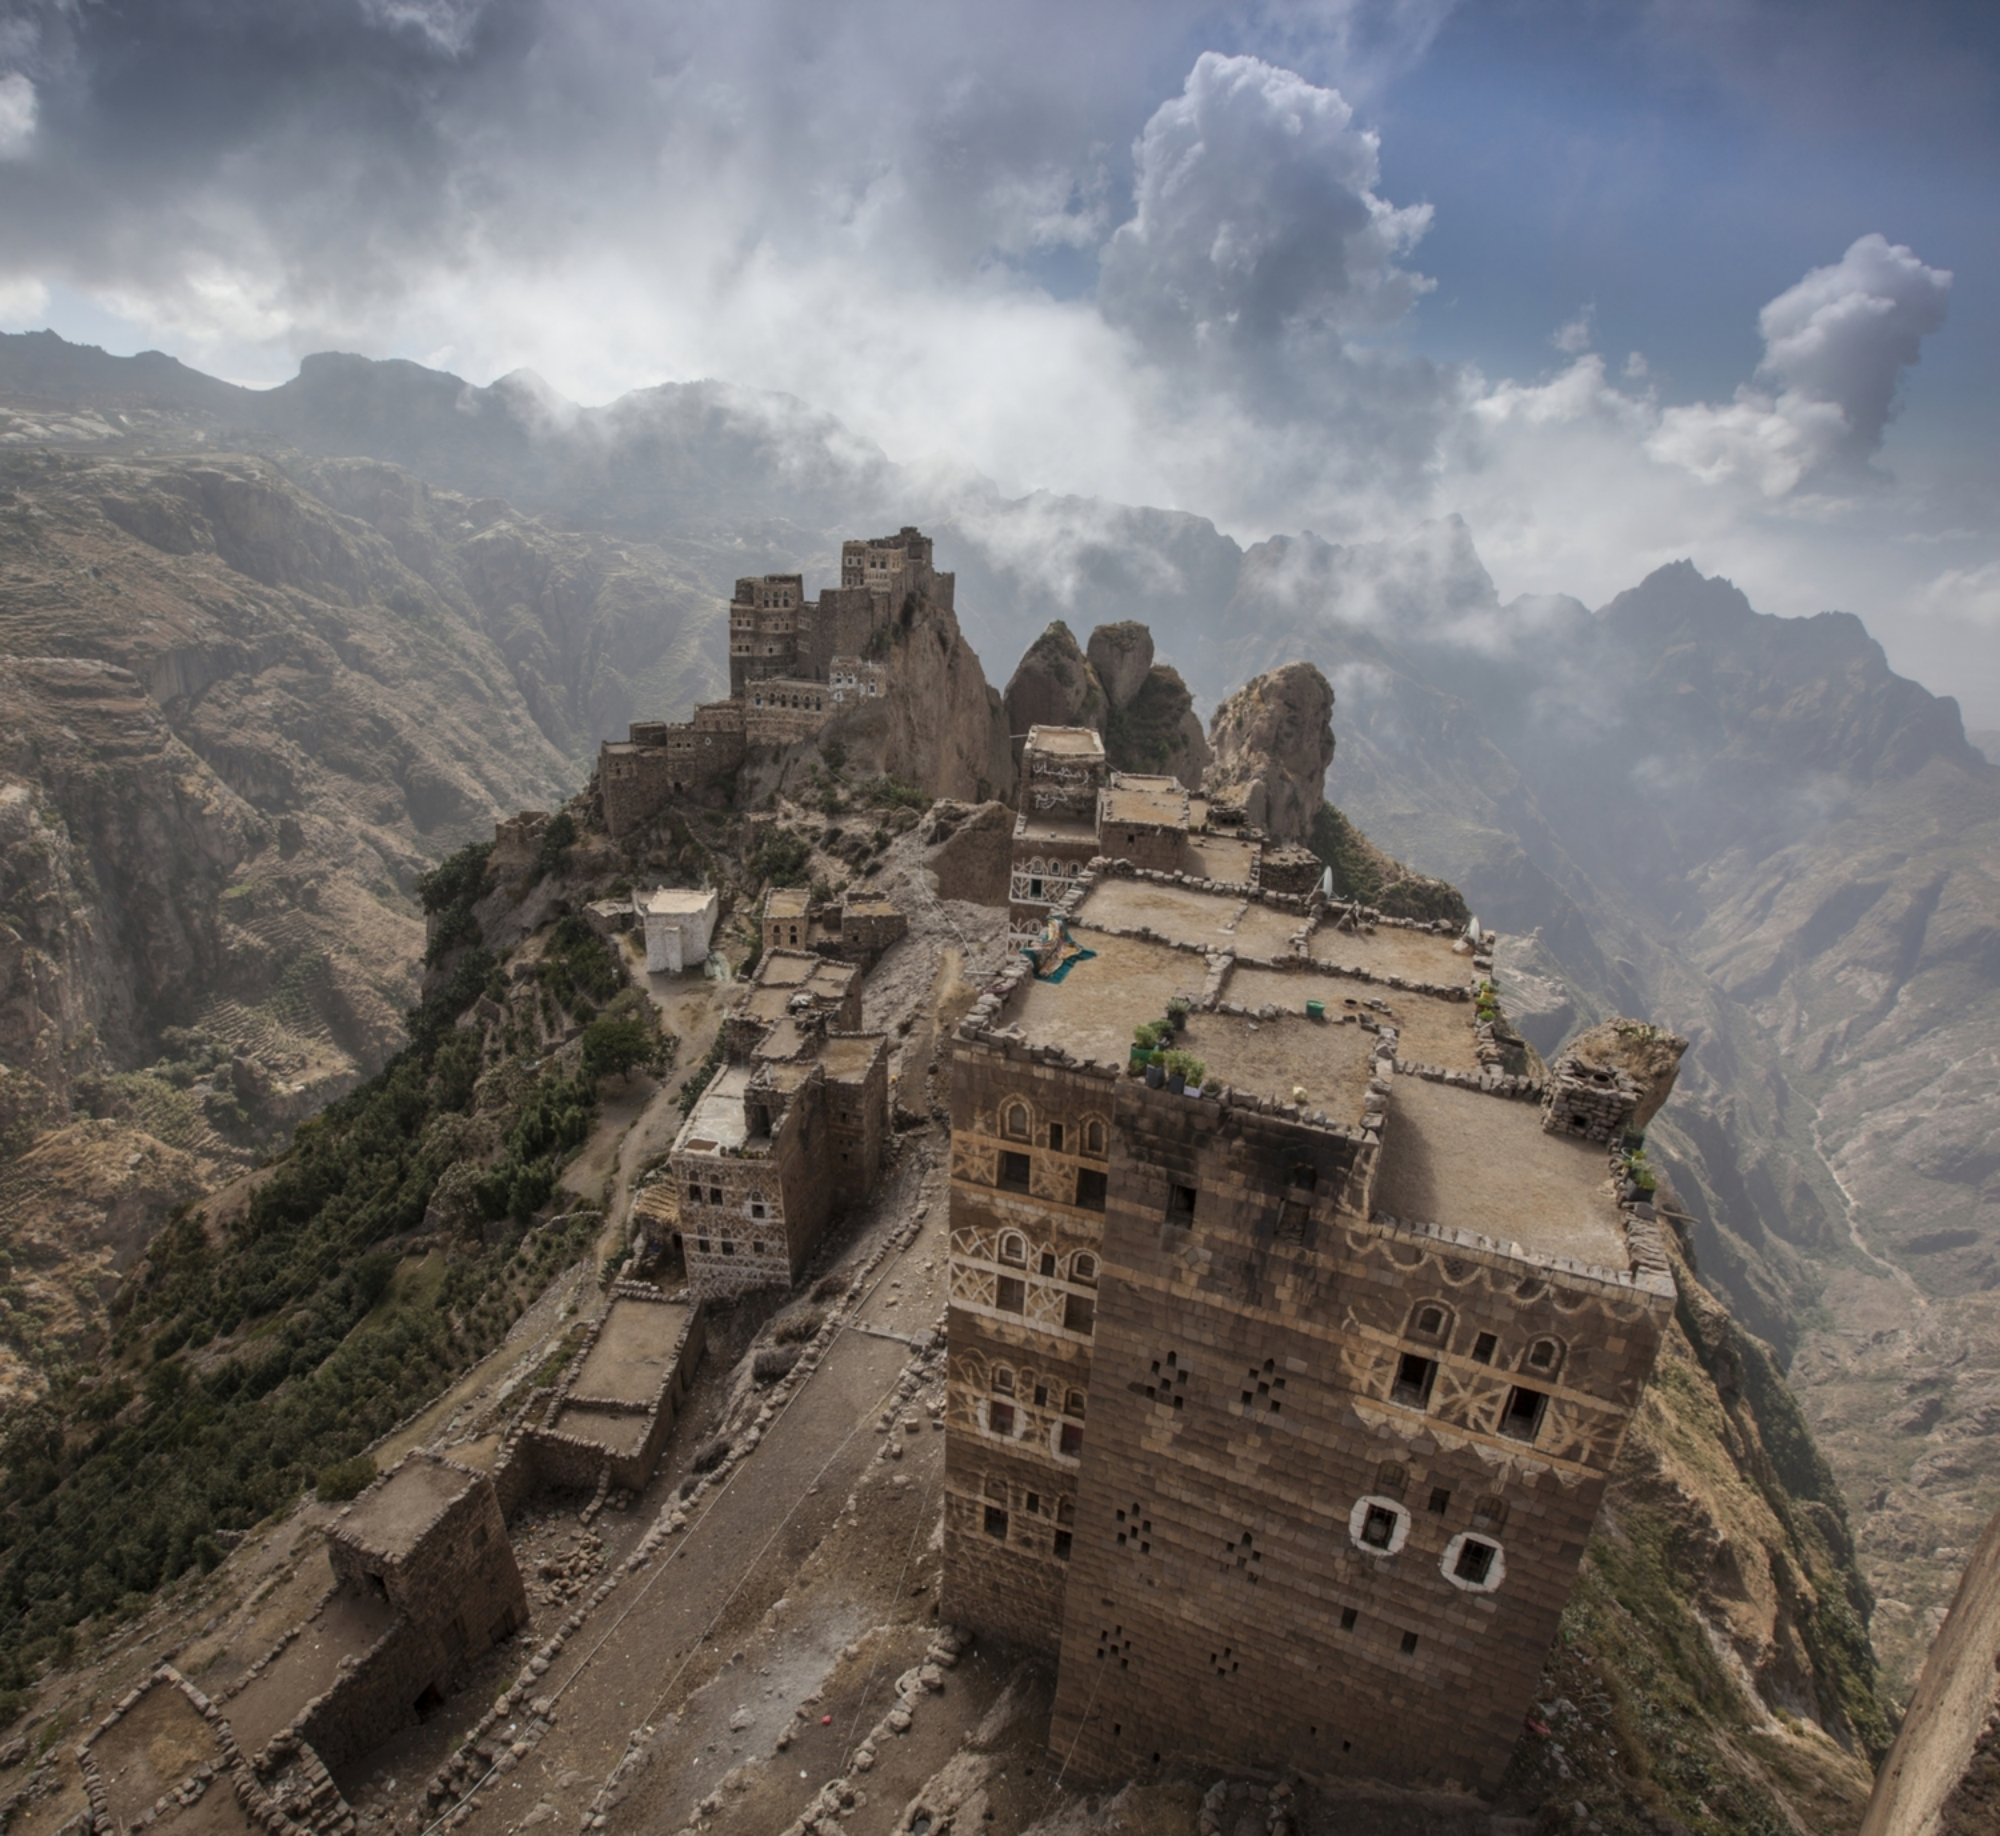 Yemen and the Holy Grail